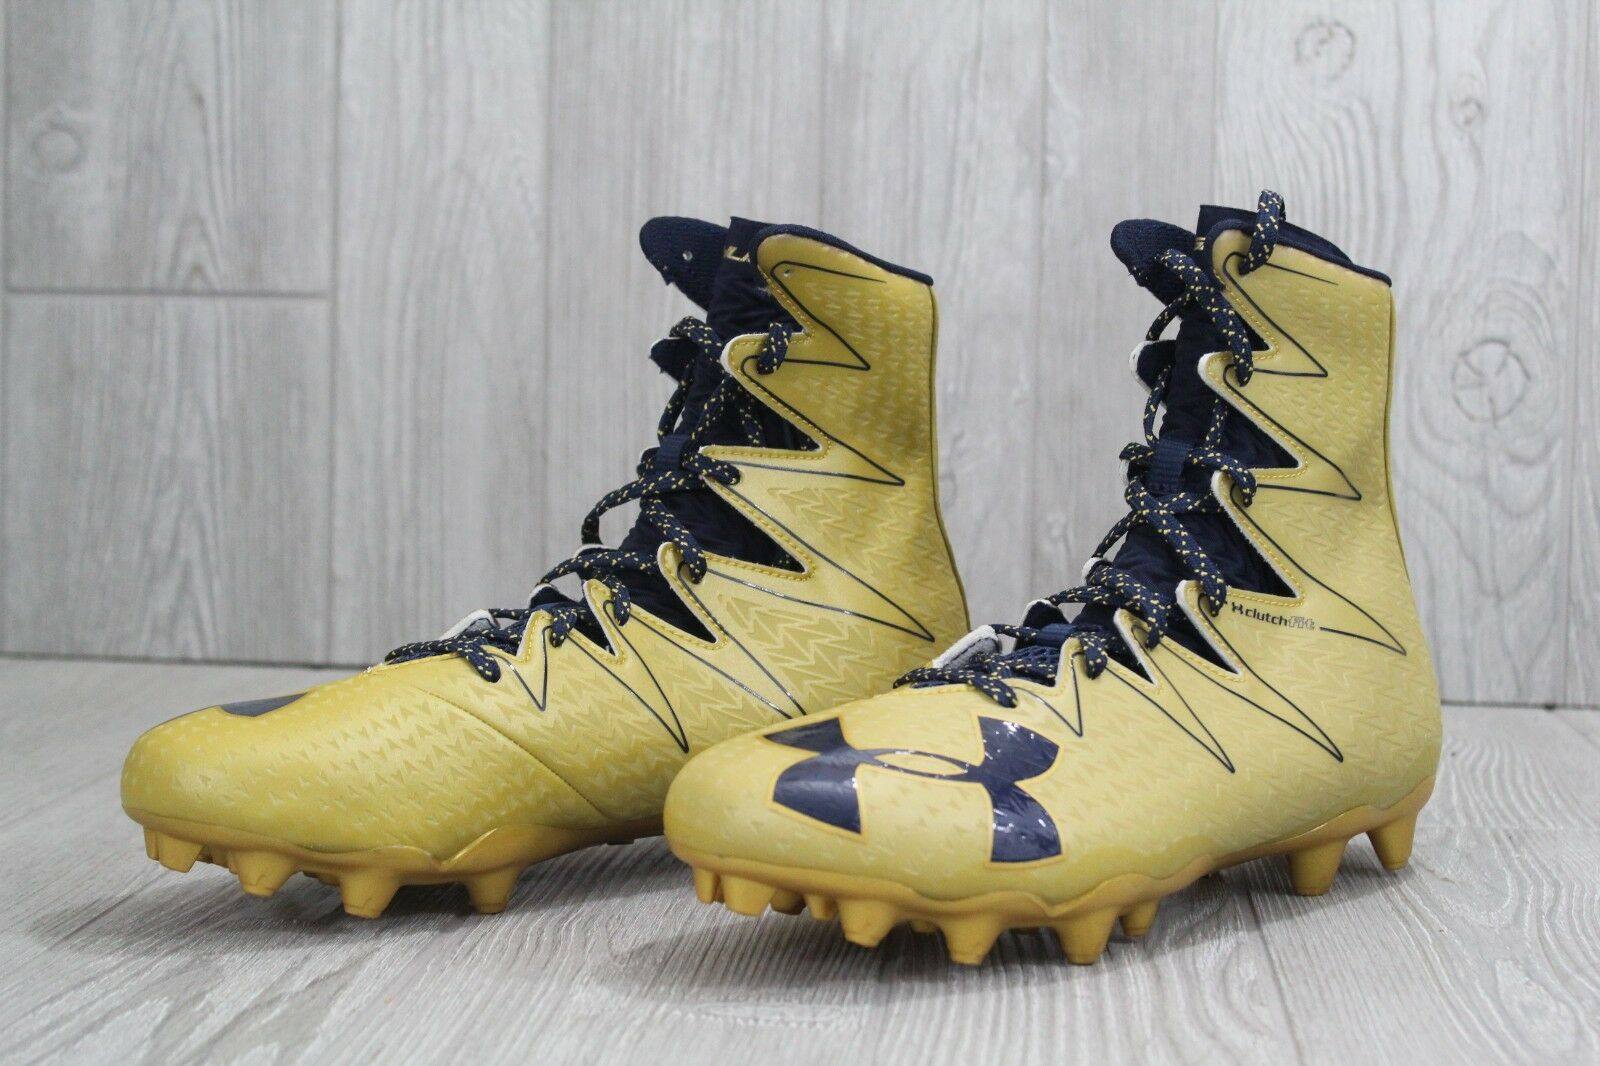 cb29ac4fc ... 32 Under Armour UA Highlight MC Football Football Football Cleats Gold  1294744-795 Mens 10.5 ...